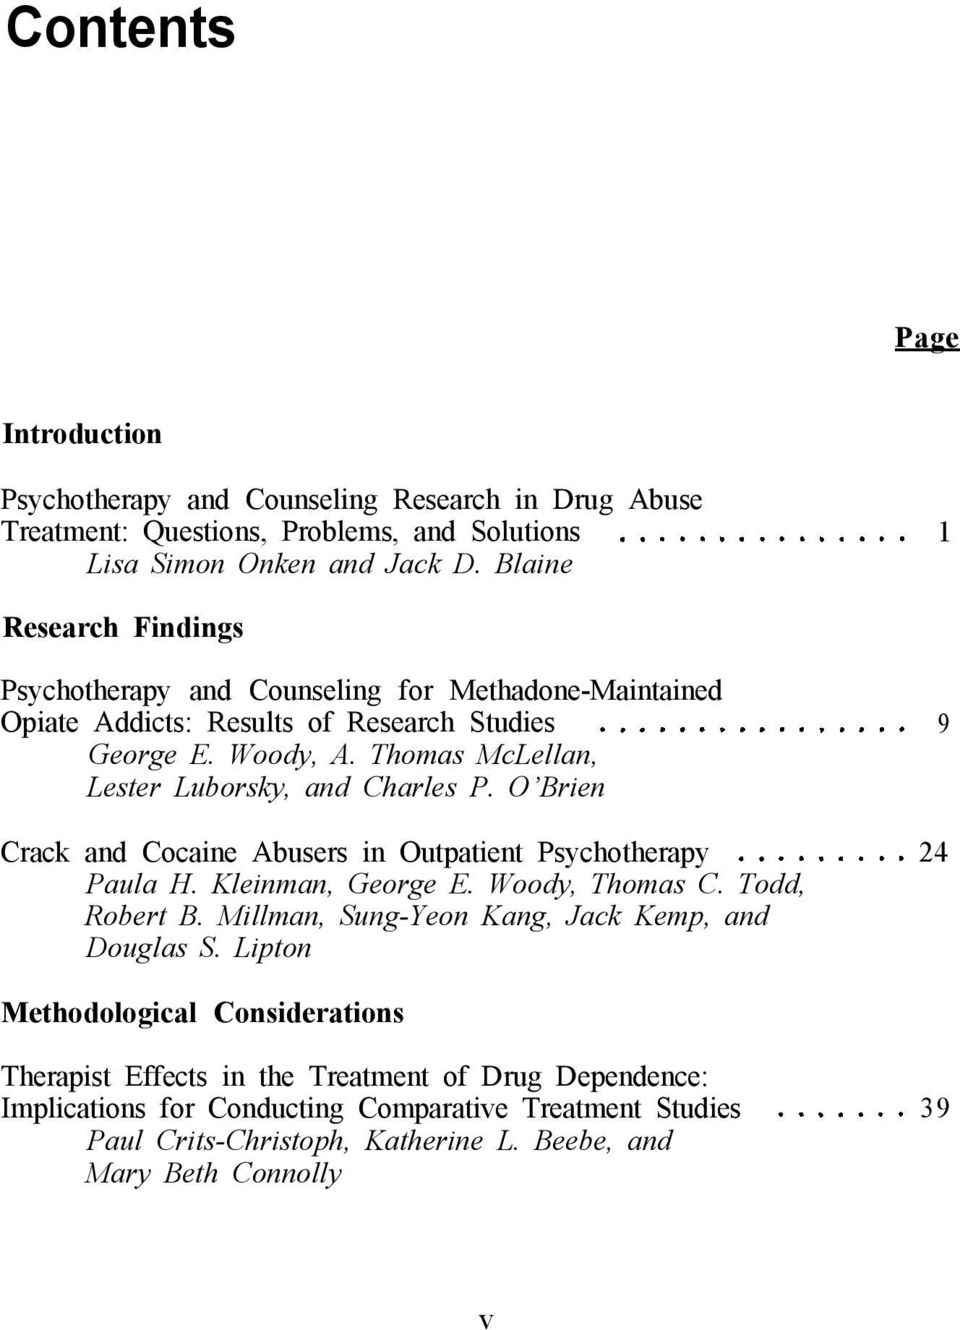 Thomas McLellan, Lester Luborsky, and Charles P. O Brien Crack and Cocaine Abusers in Outpatient Psychotherapy 24 Paula H. Kleinman, George E. Woody, Thomas C. Todd, Robert B.